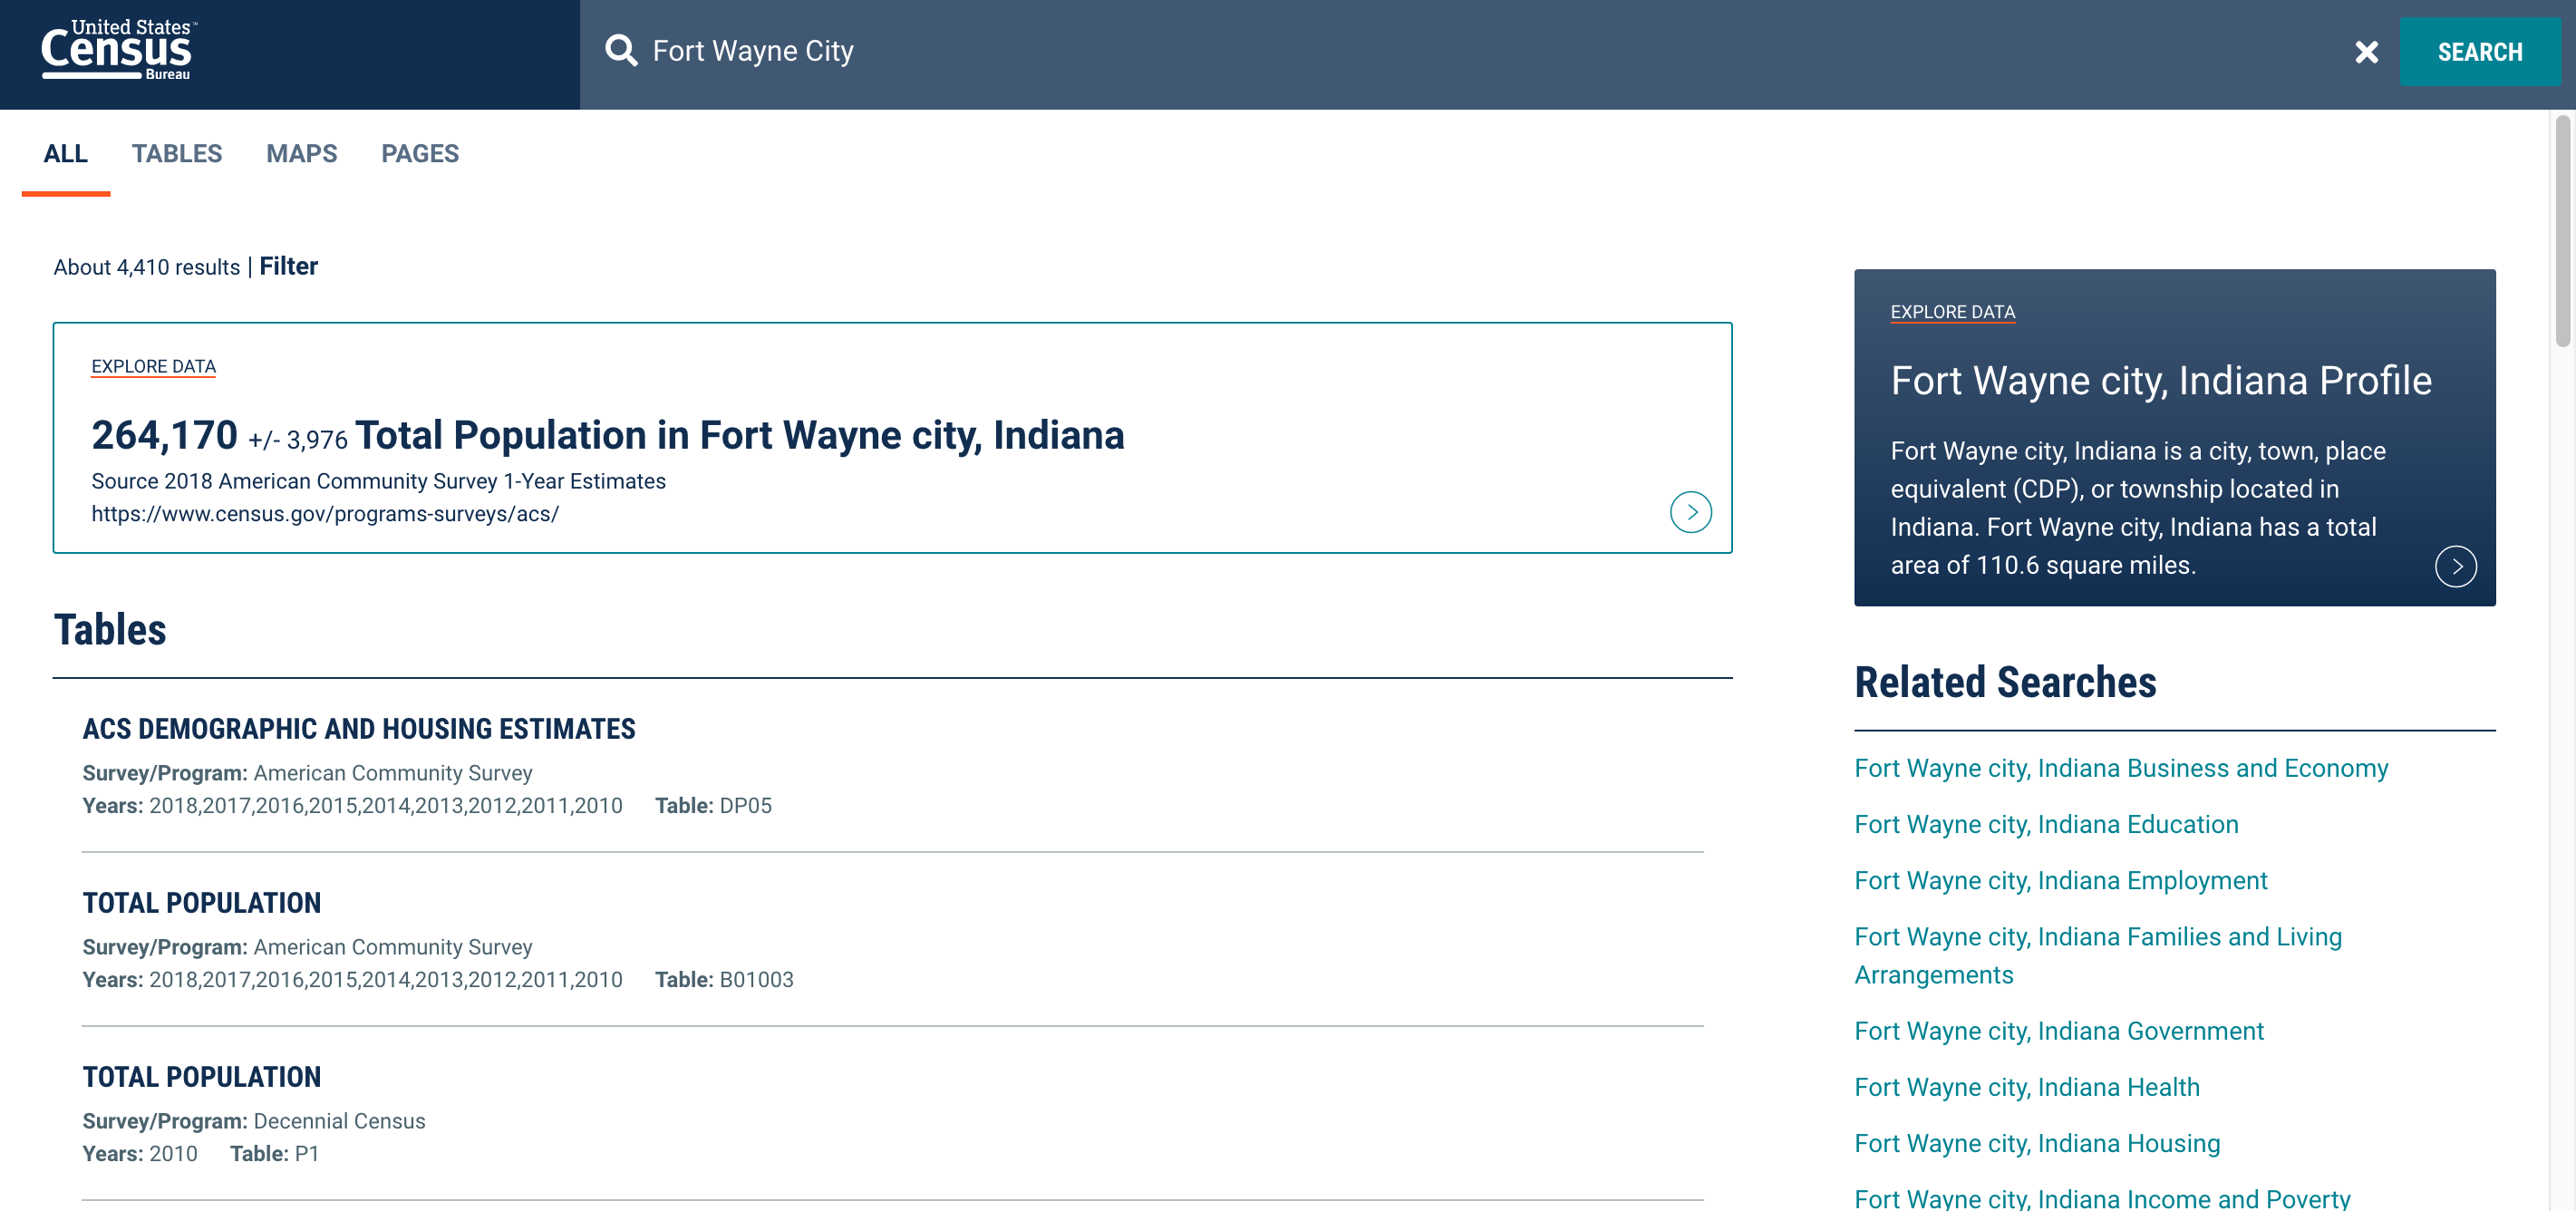 Fort Wayne City search results